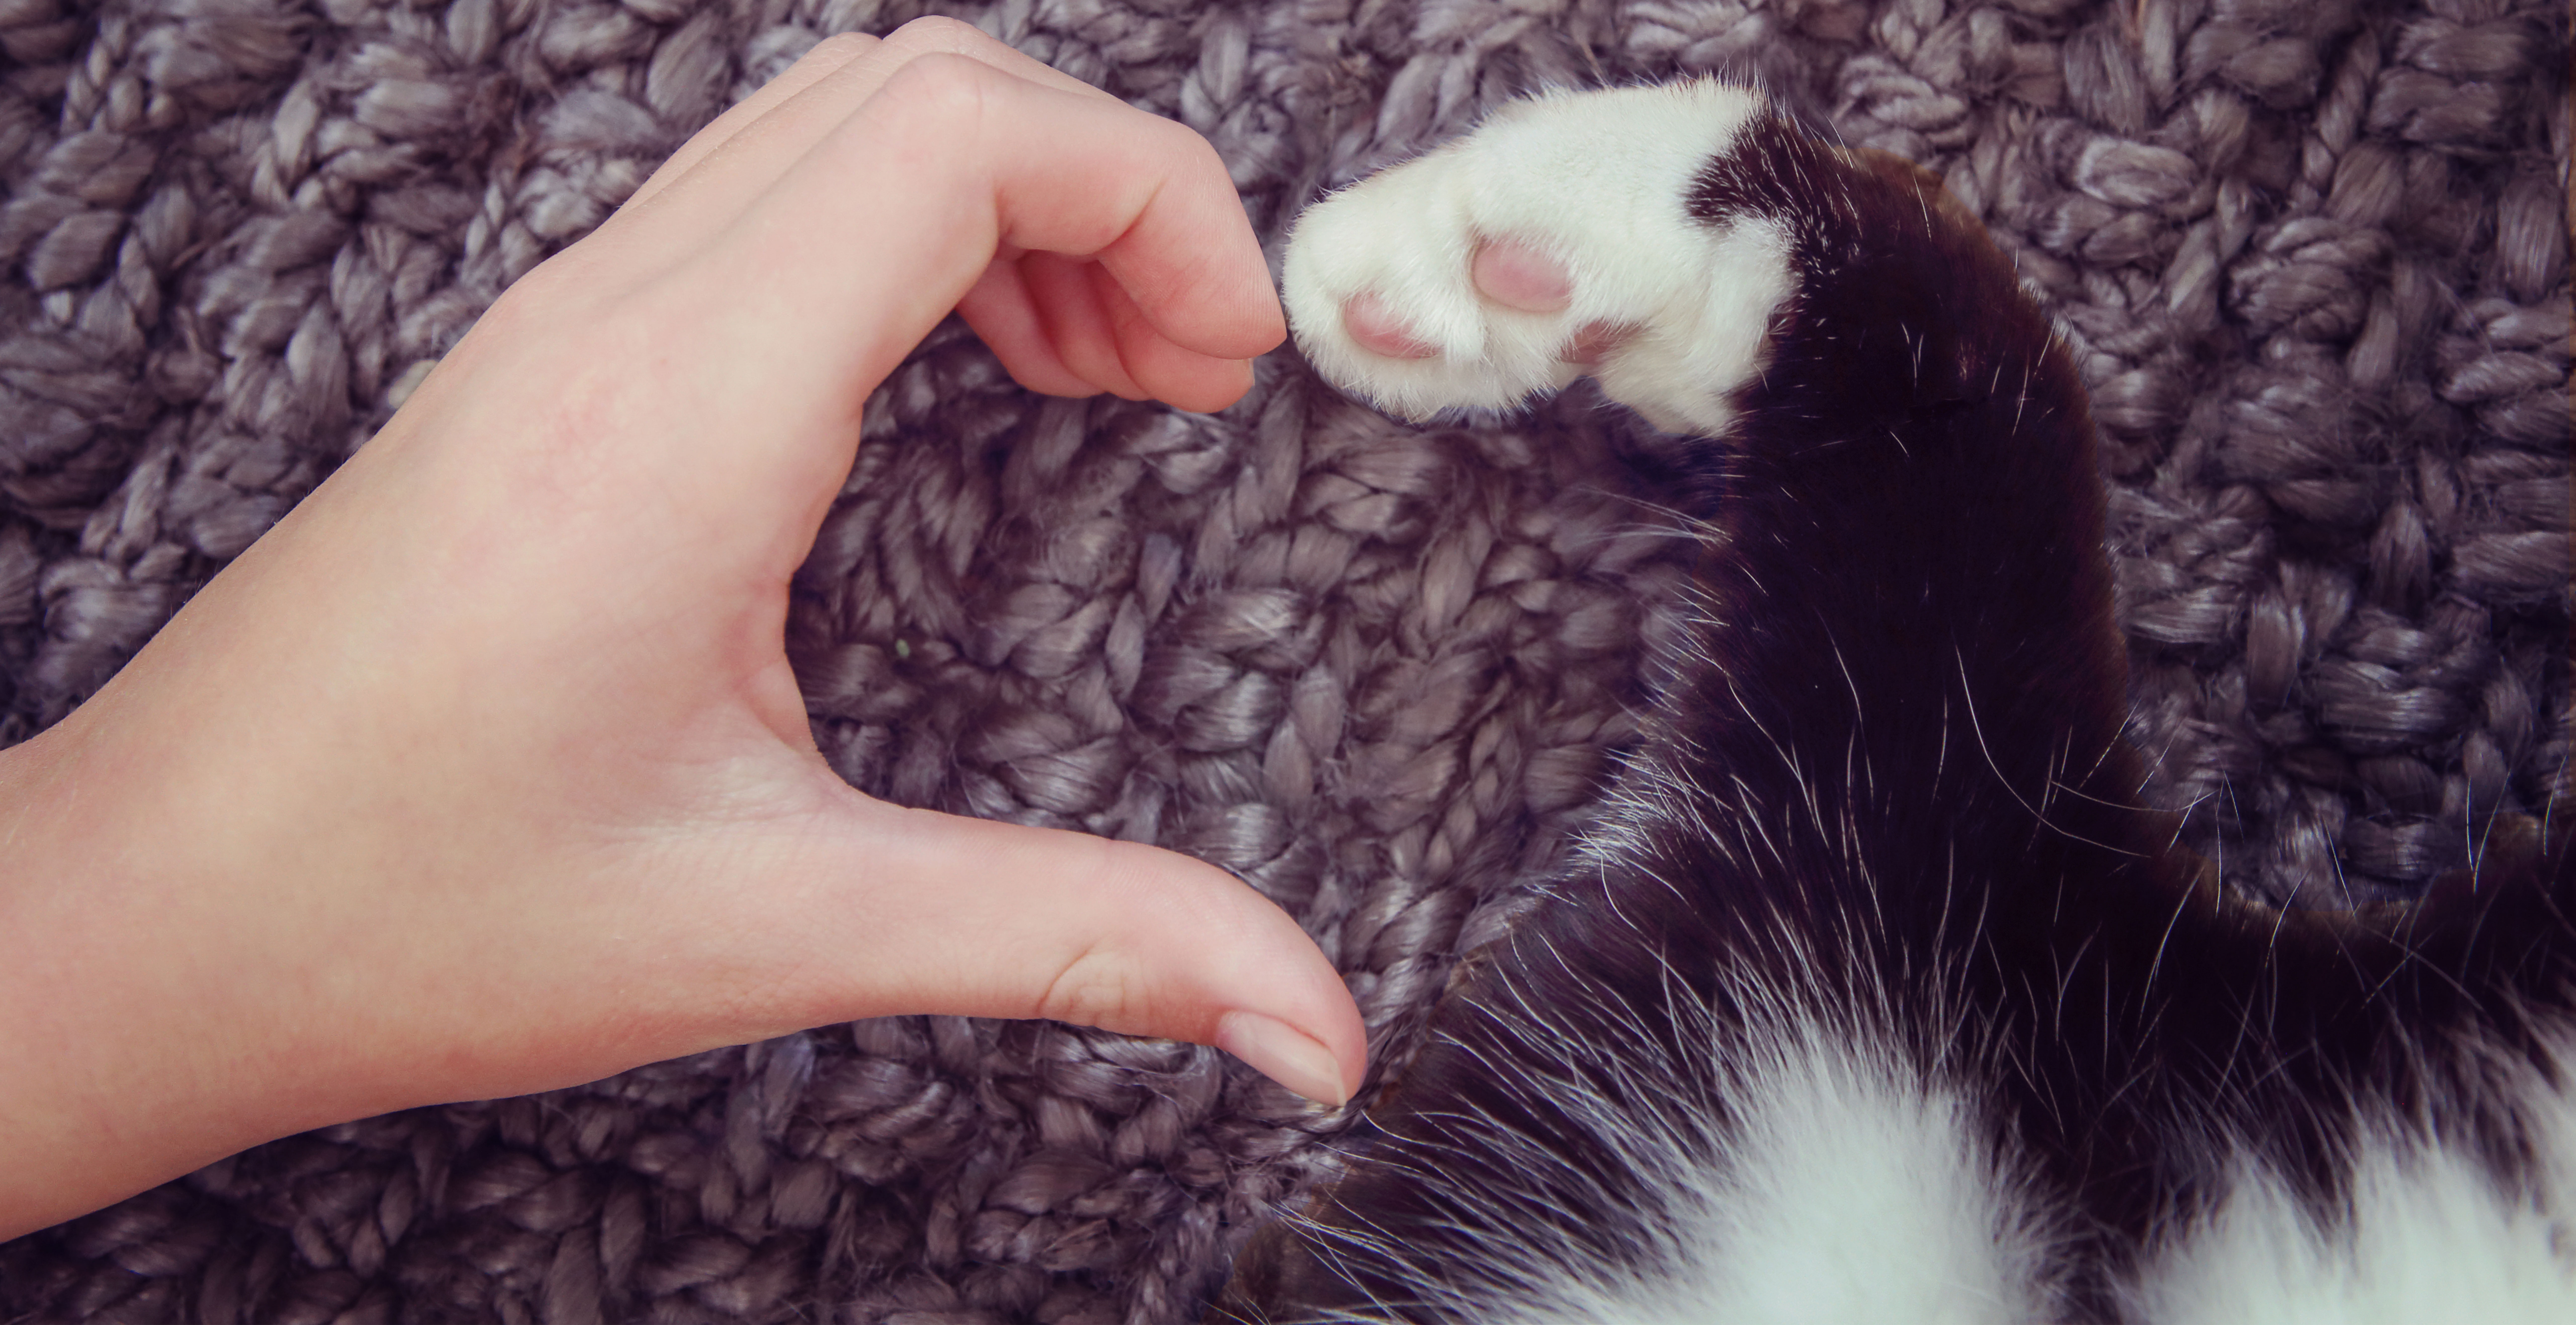 human hand and cat paw placed together to form the shape of a heart